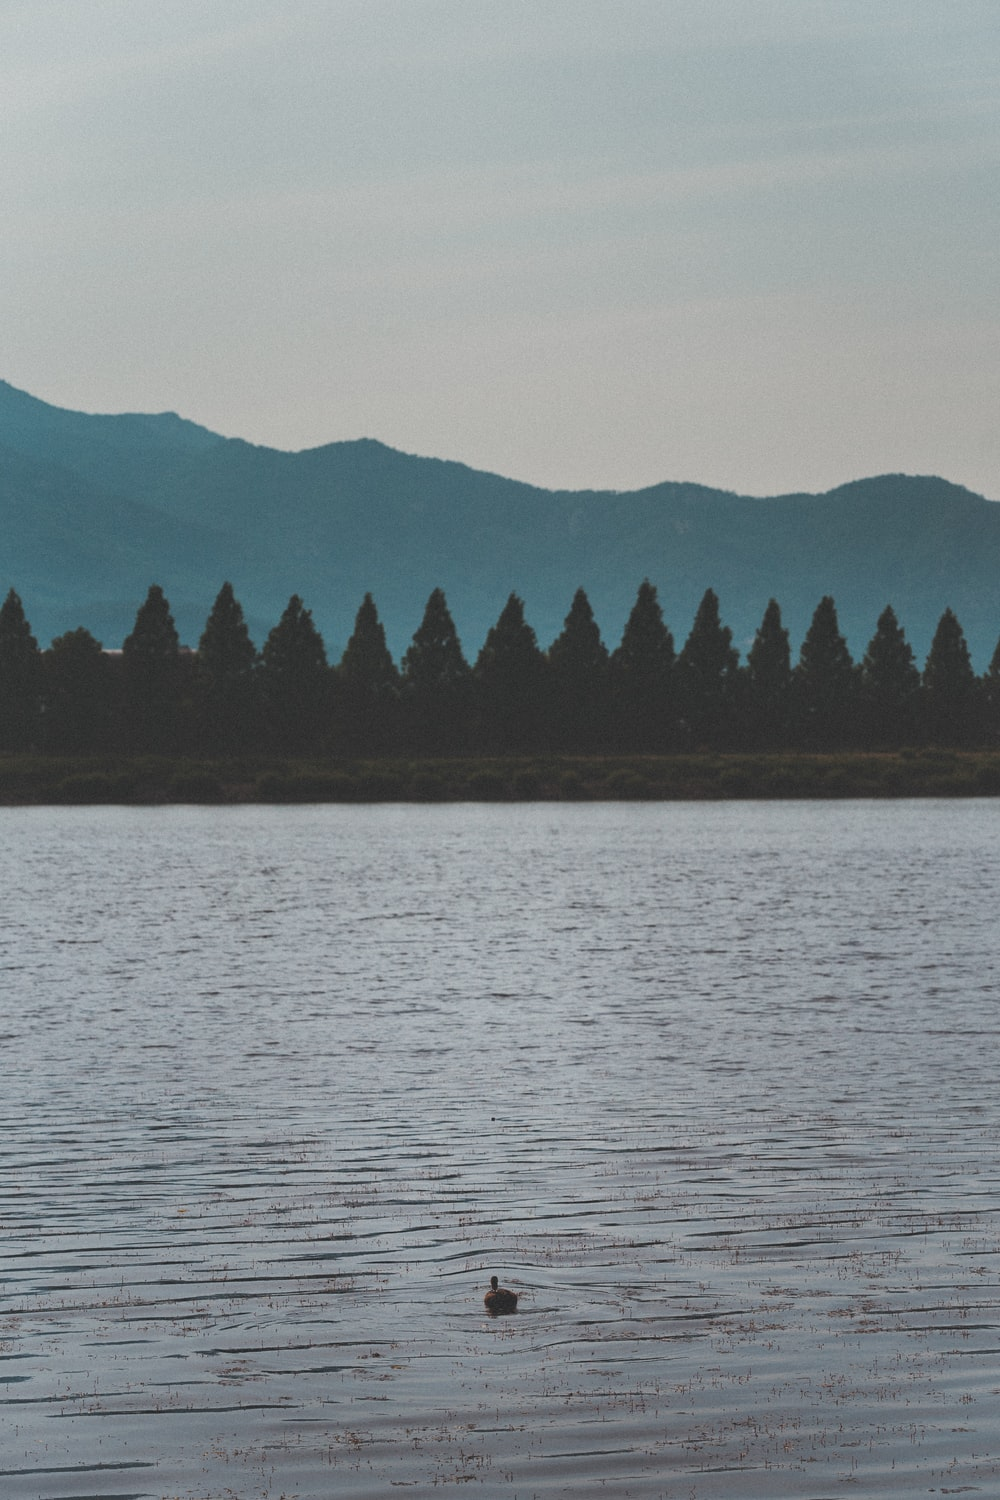 pine trees near body of water during clear blue sky